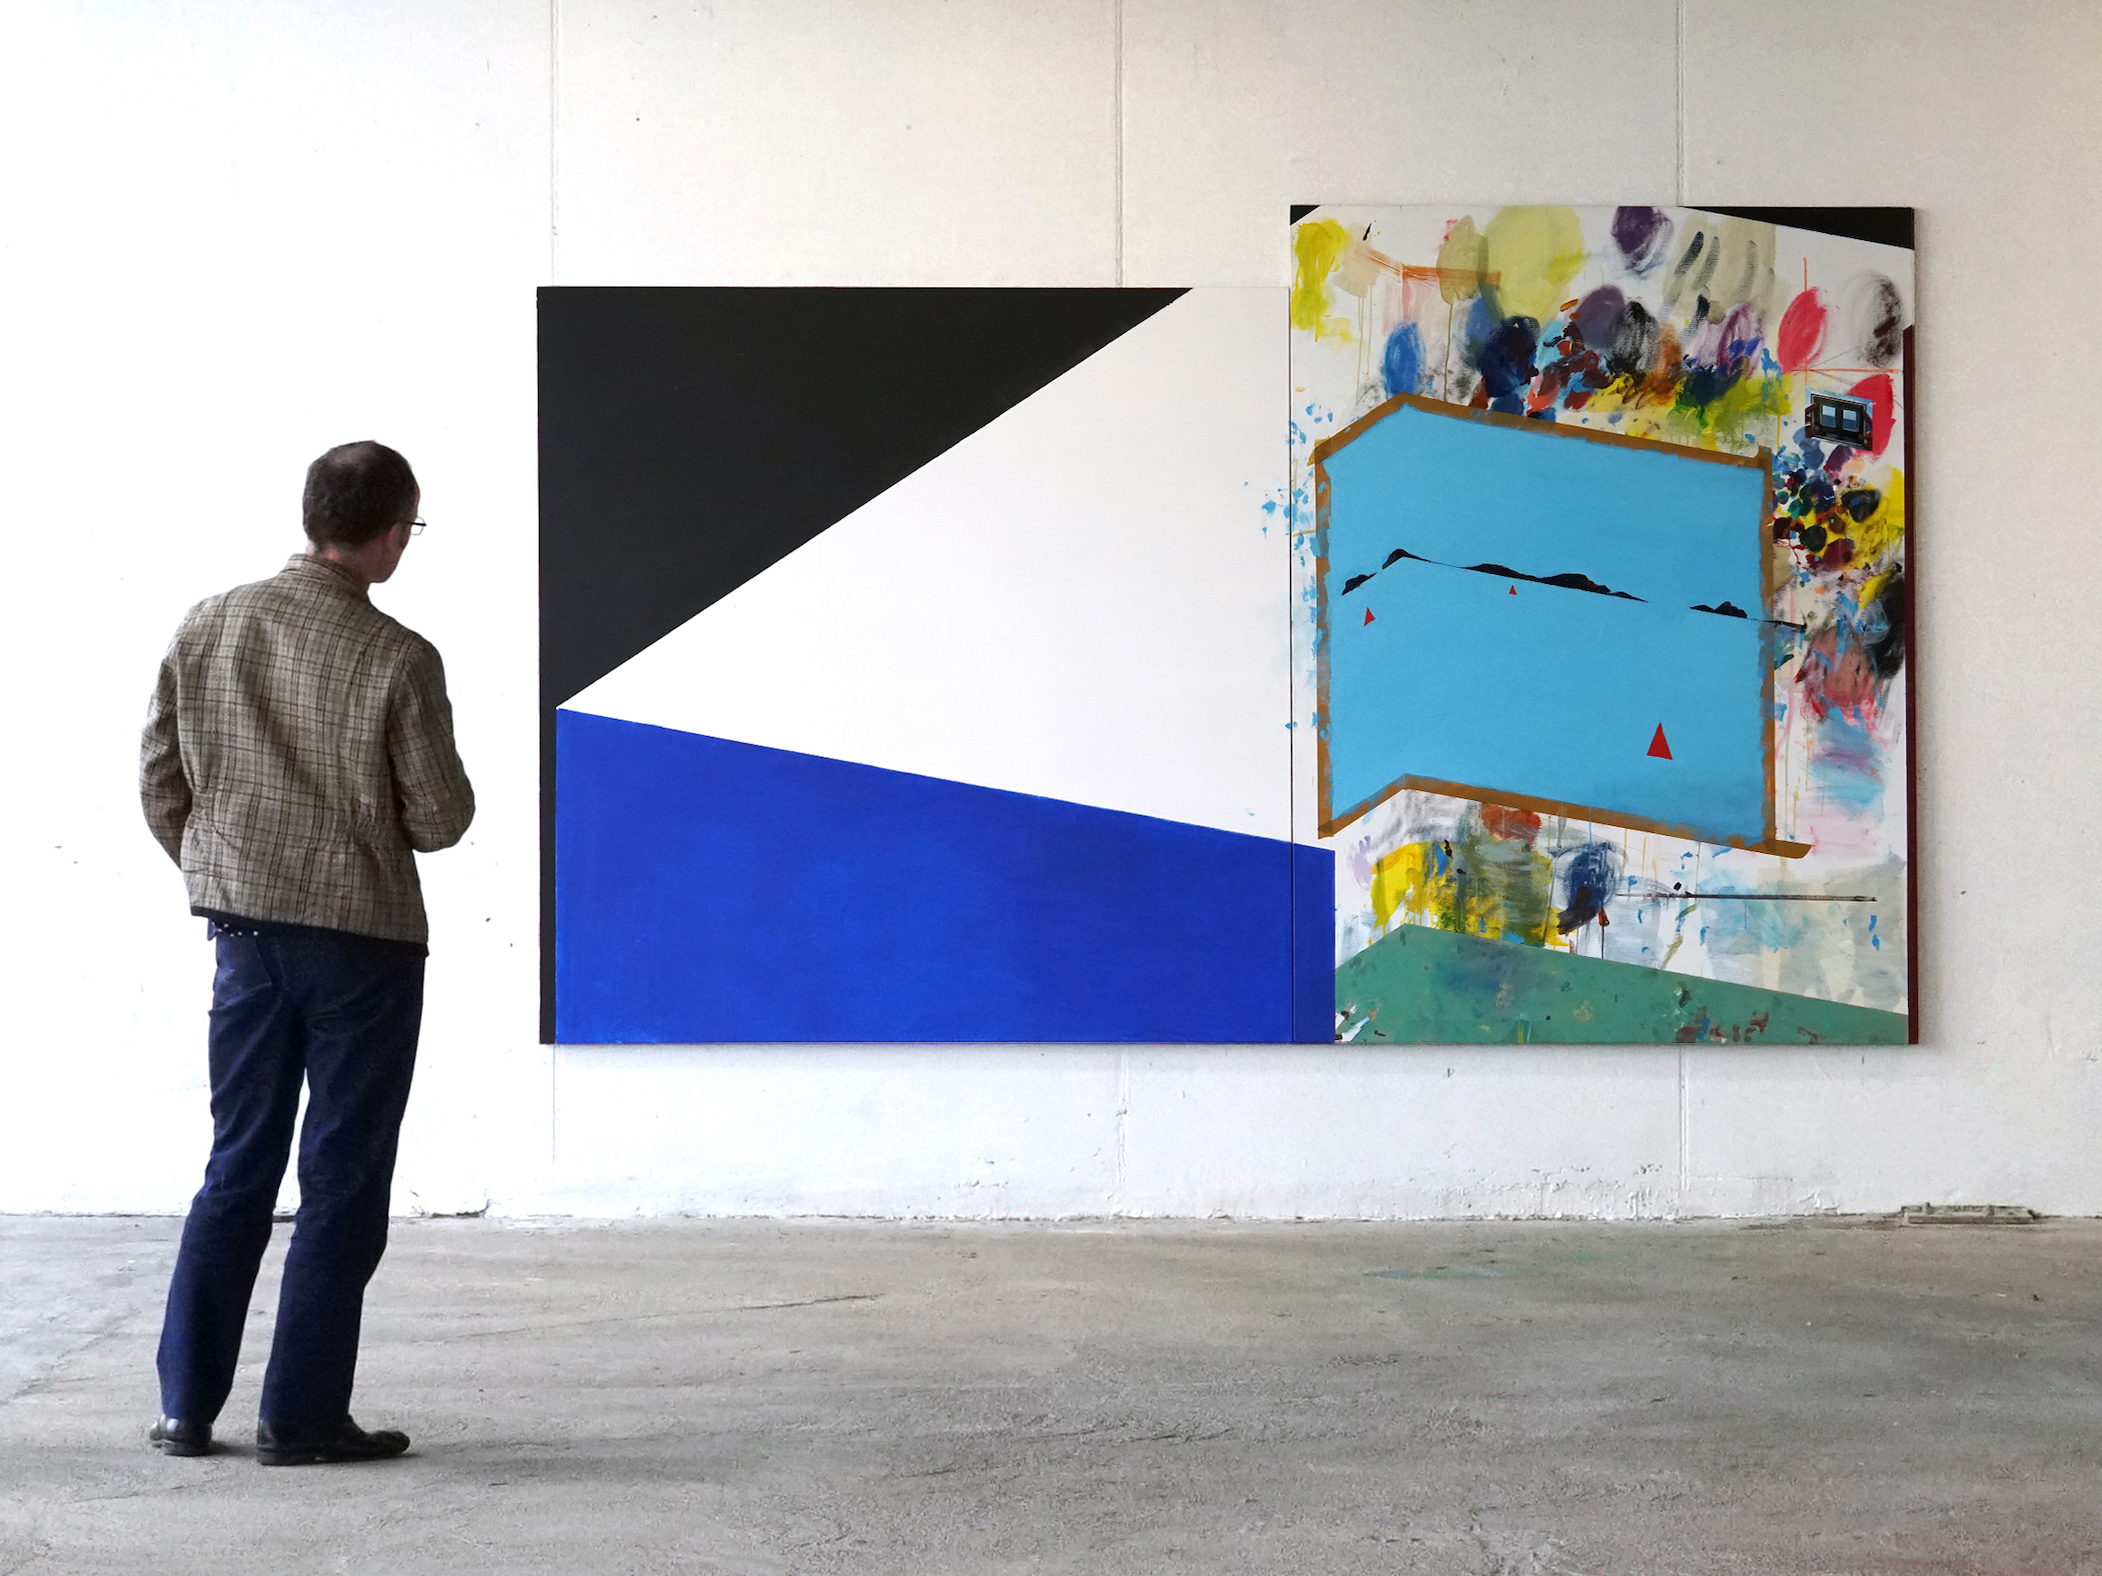 Ramon Kassam | Study for a Studio by the Sea. Install